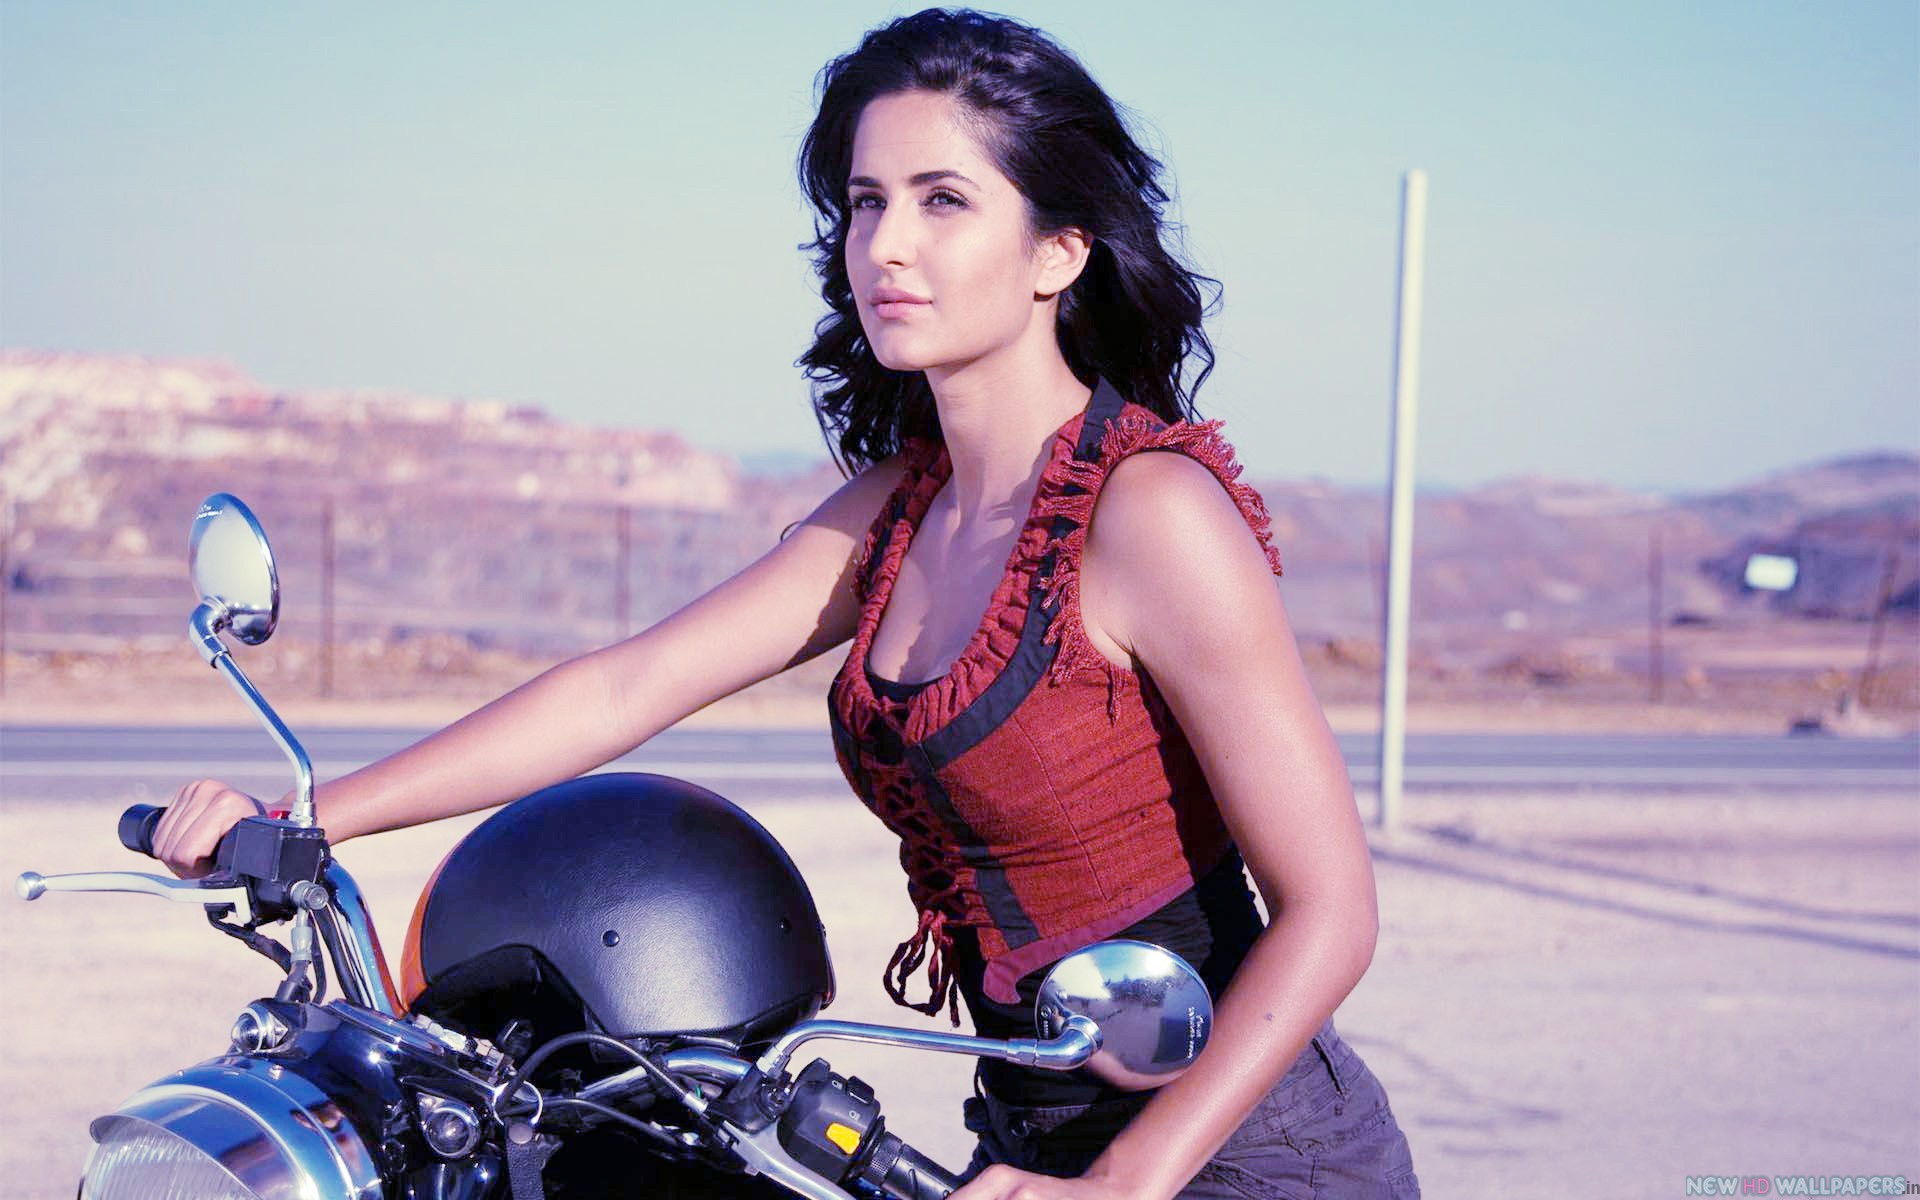 hot-image-of-Katrina-Kaif-with-Bike